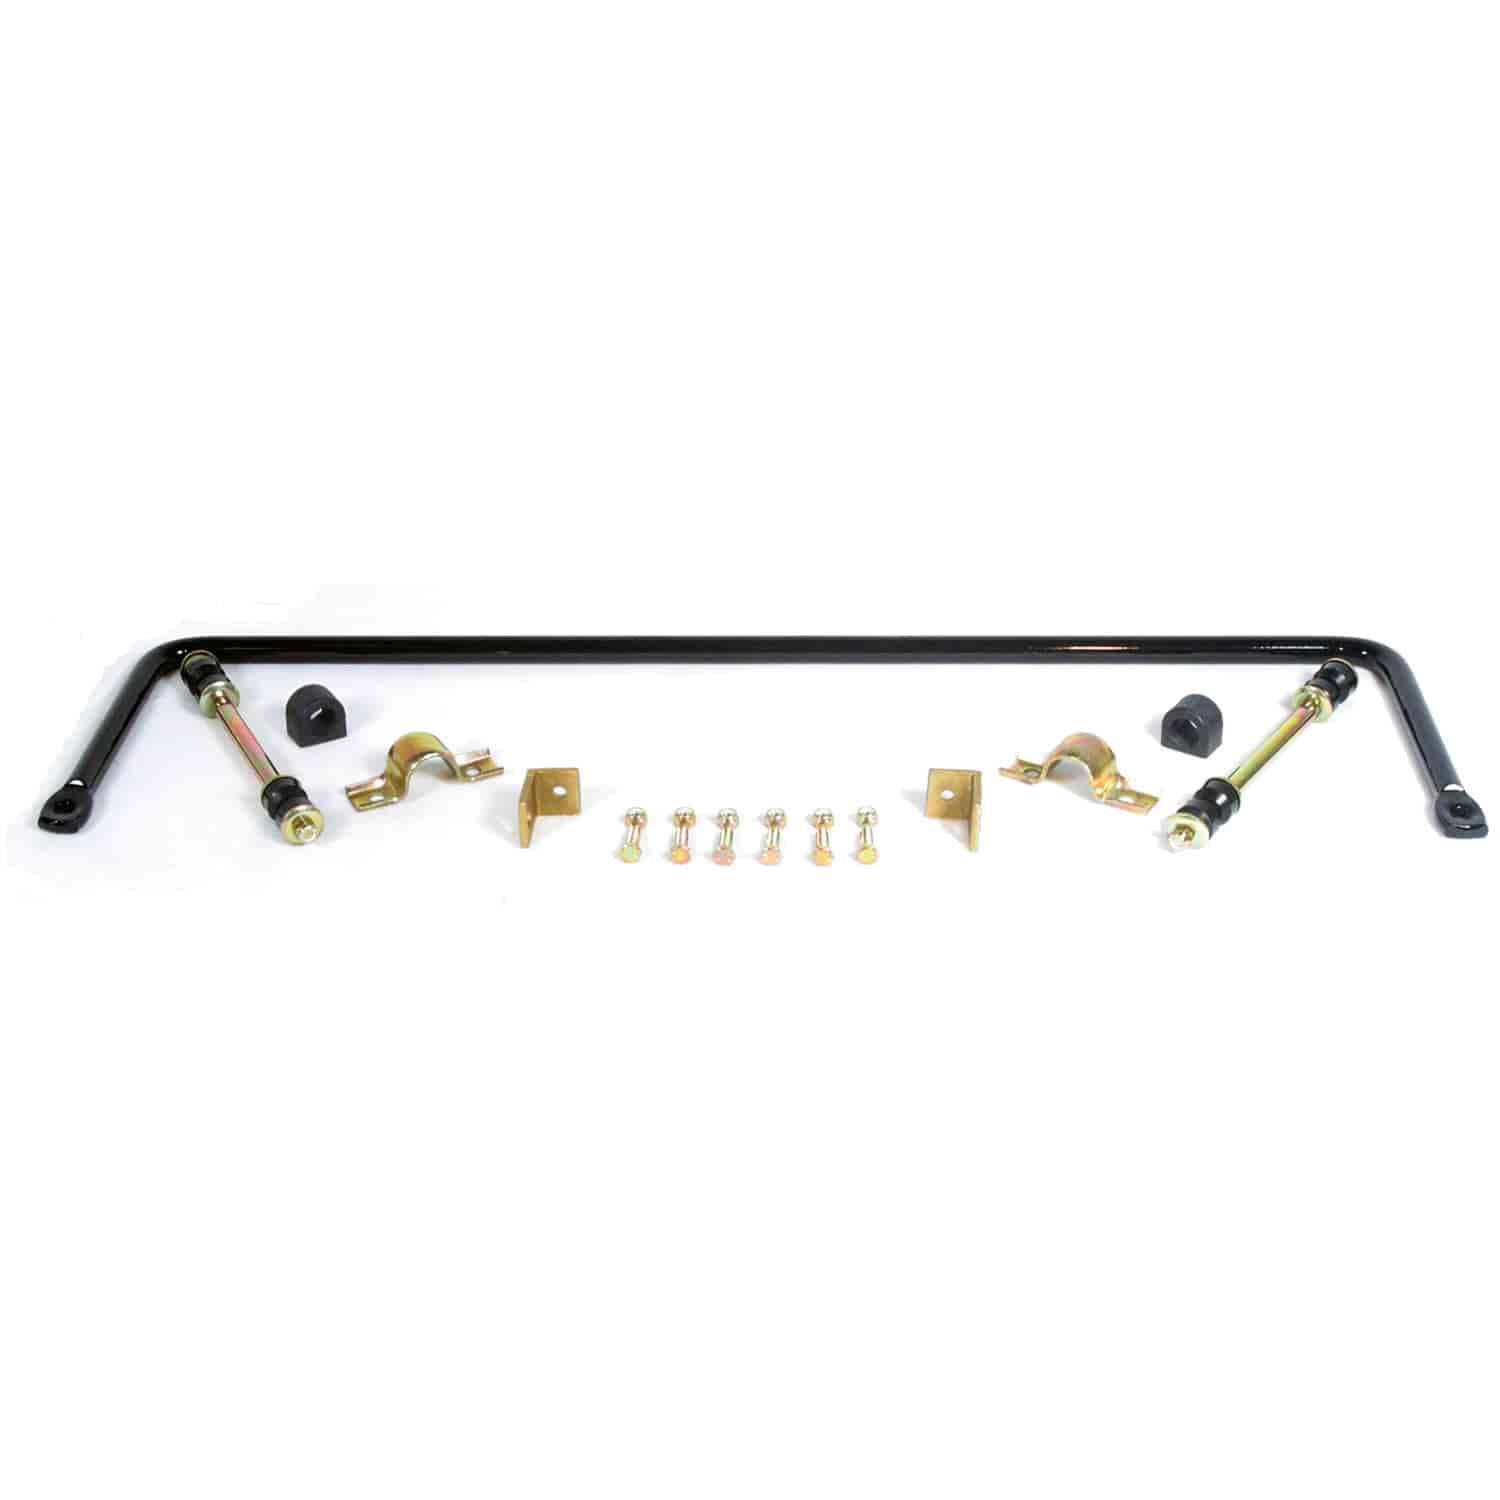 Addco 954 7 8 Rear Sway Bar 72 Blazer 2wd C10